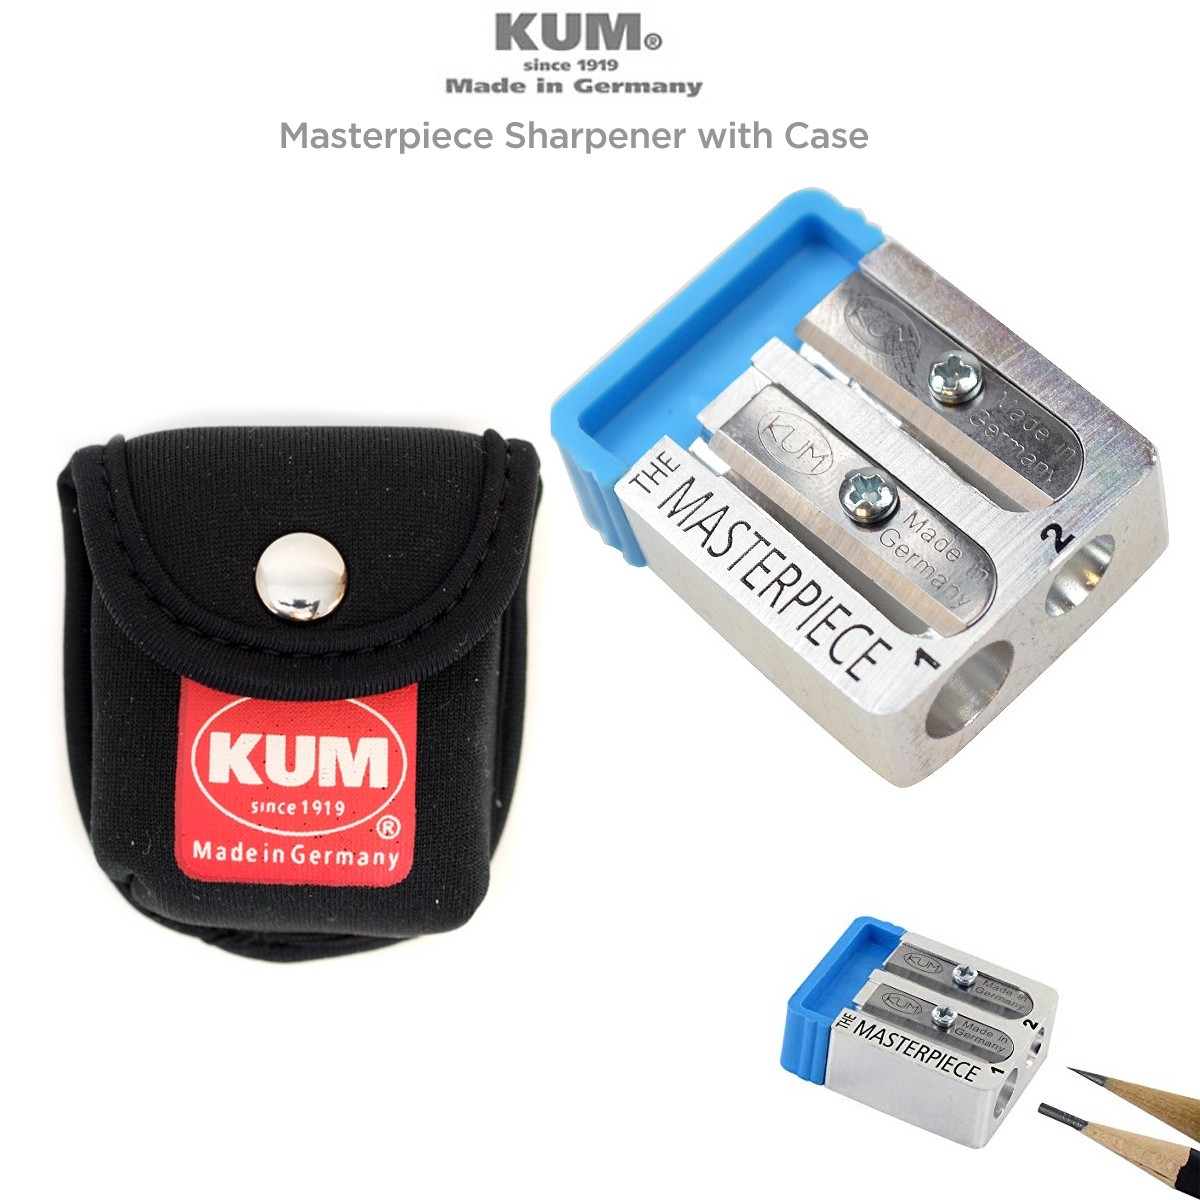 KUM Masterpiece Sharpener Long Point 2 Hole Pencil & Pouch